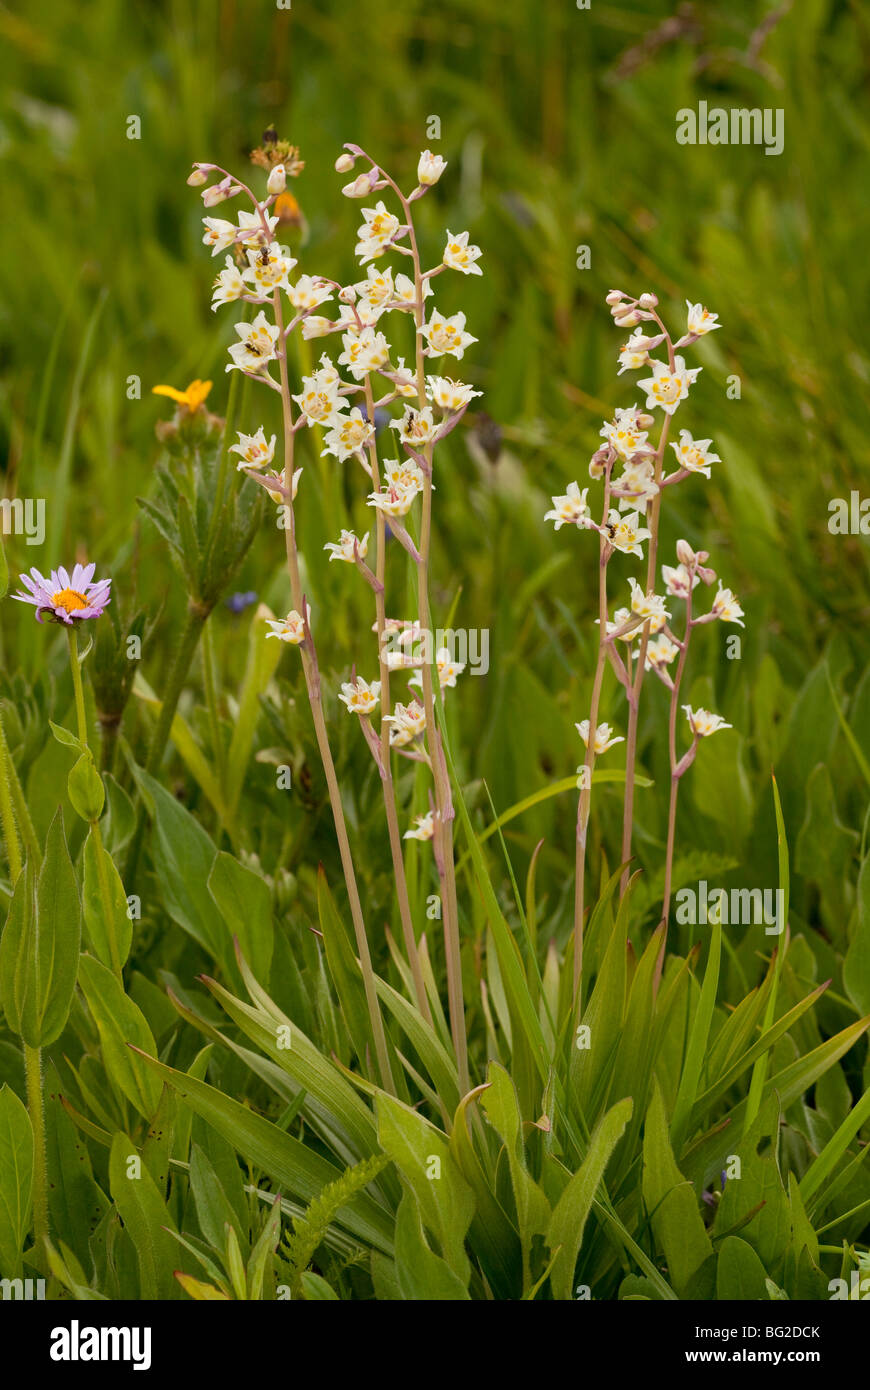 Death Camas, Wand Lily or Poison Sego, Anticlea elegans = Zigadenus elegans, The Rockies, Colorado, USA, North America. - Stock Image